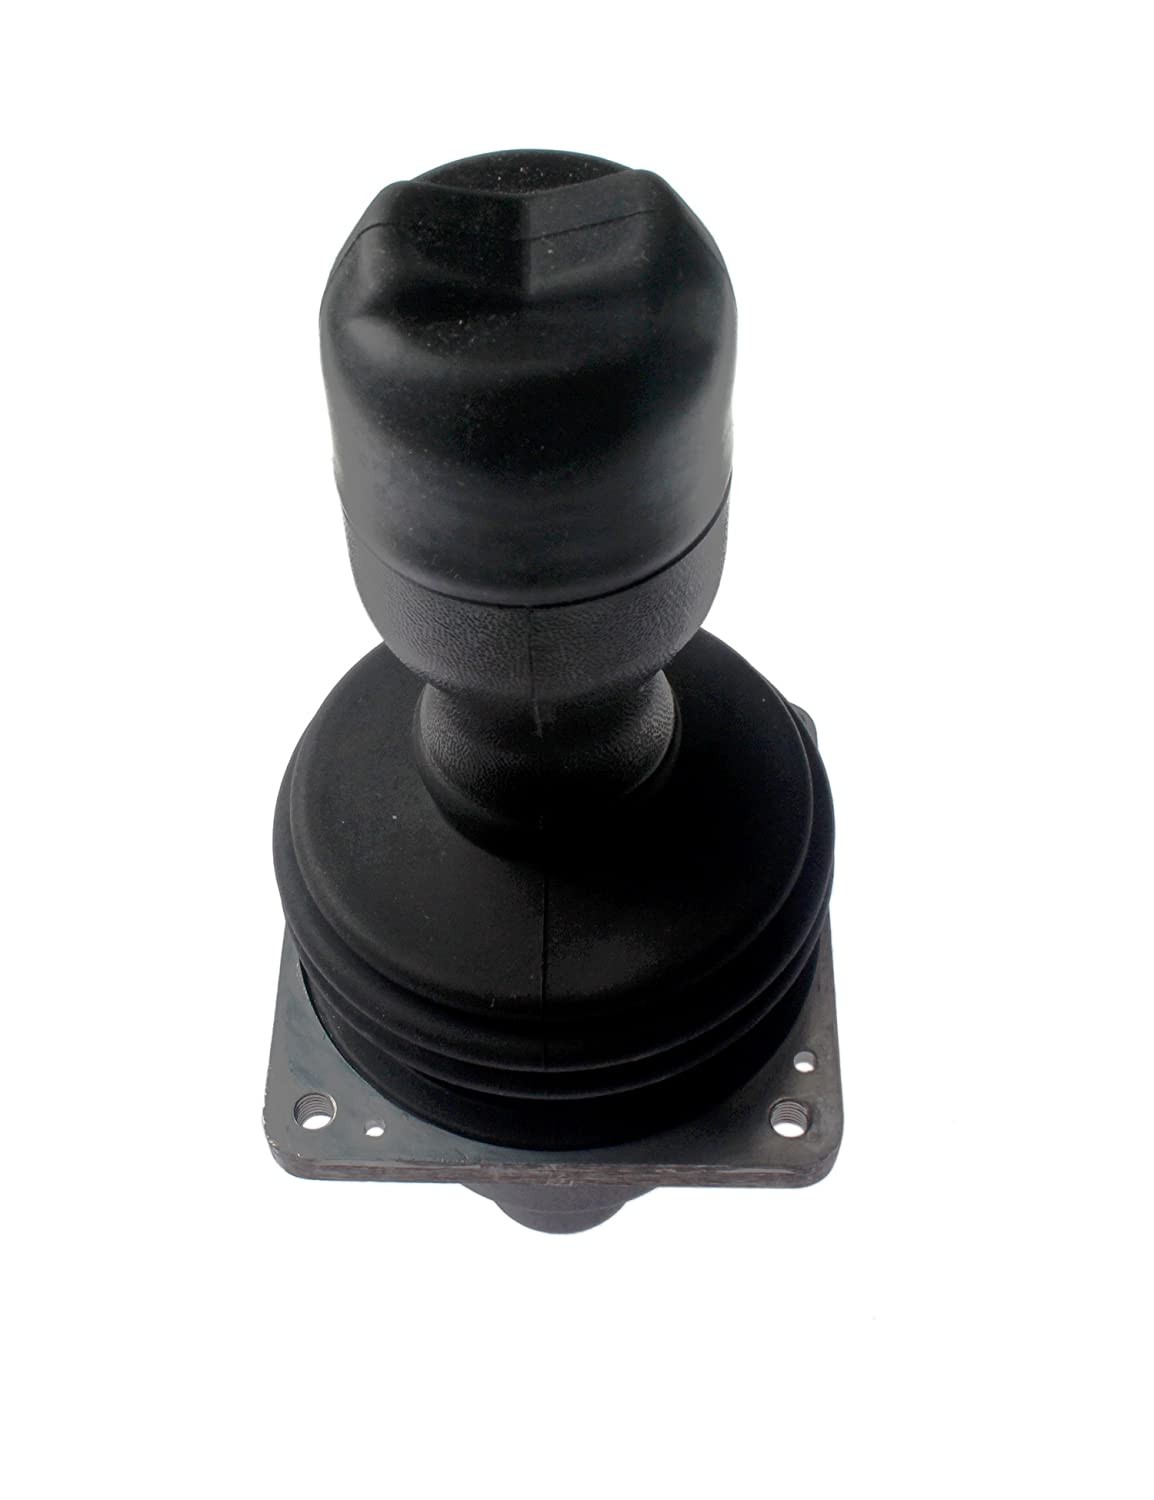 Single Axis Joystick Controller 101173 101173GT for Genie Straight Lifts and Articulating Booms Lifts S-60 S-65 S-80 S-85 Z-135//70 Z-33//18 Z-40//23N